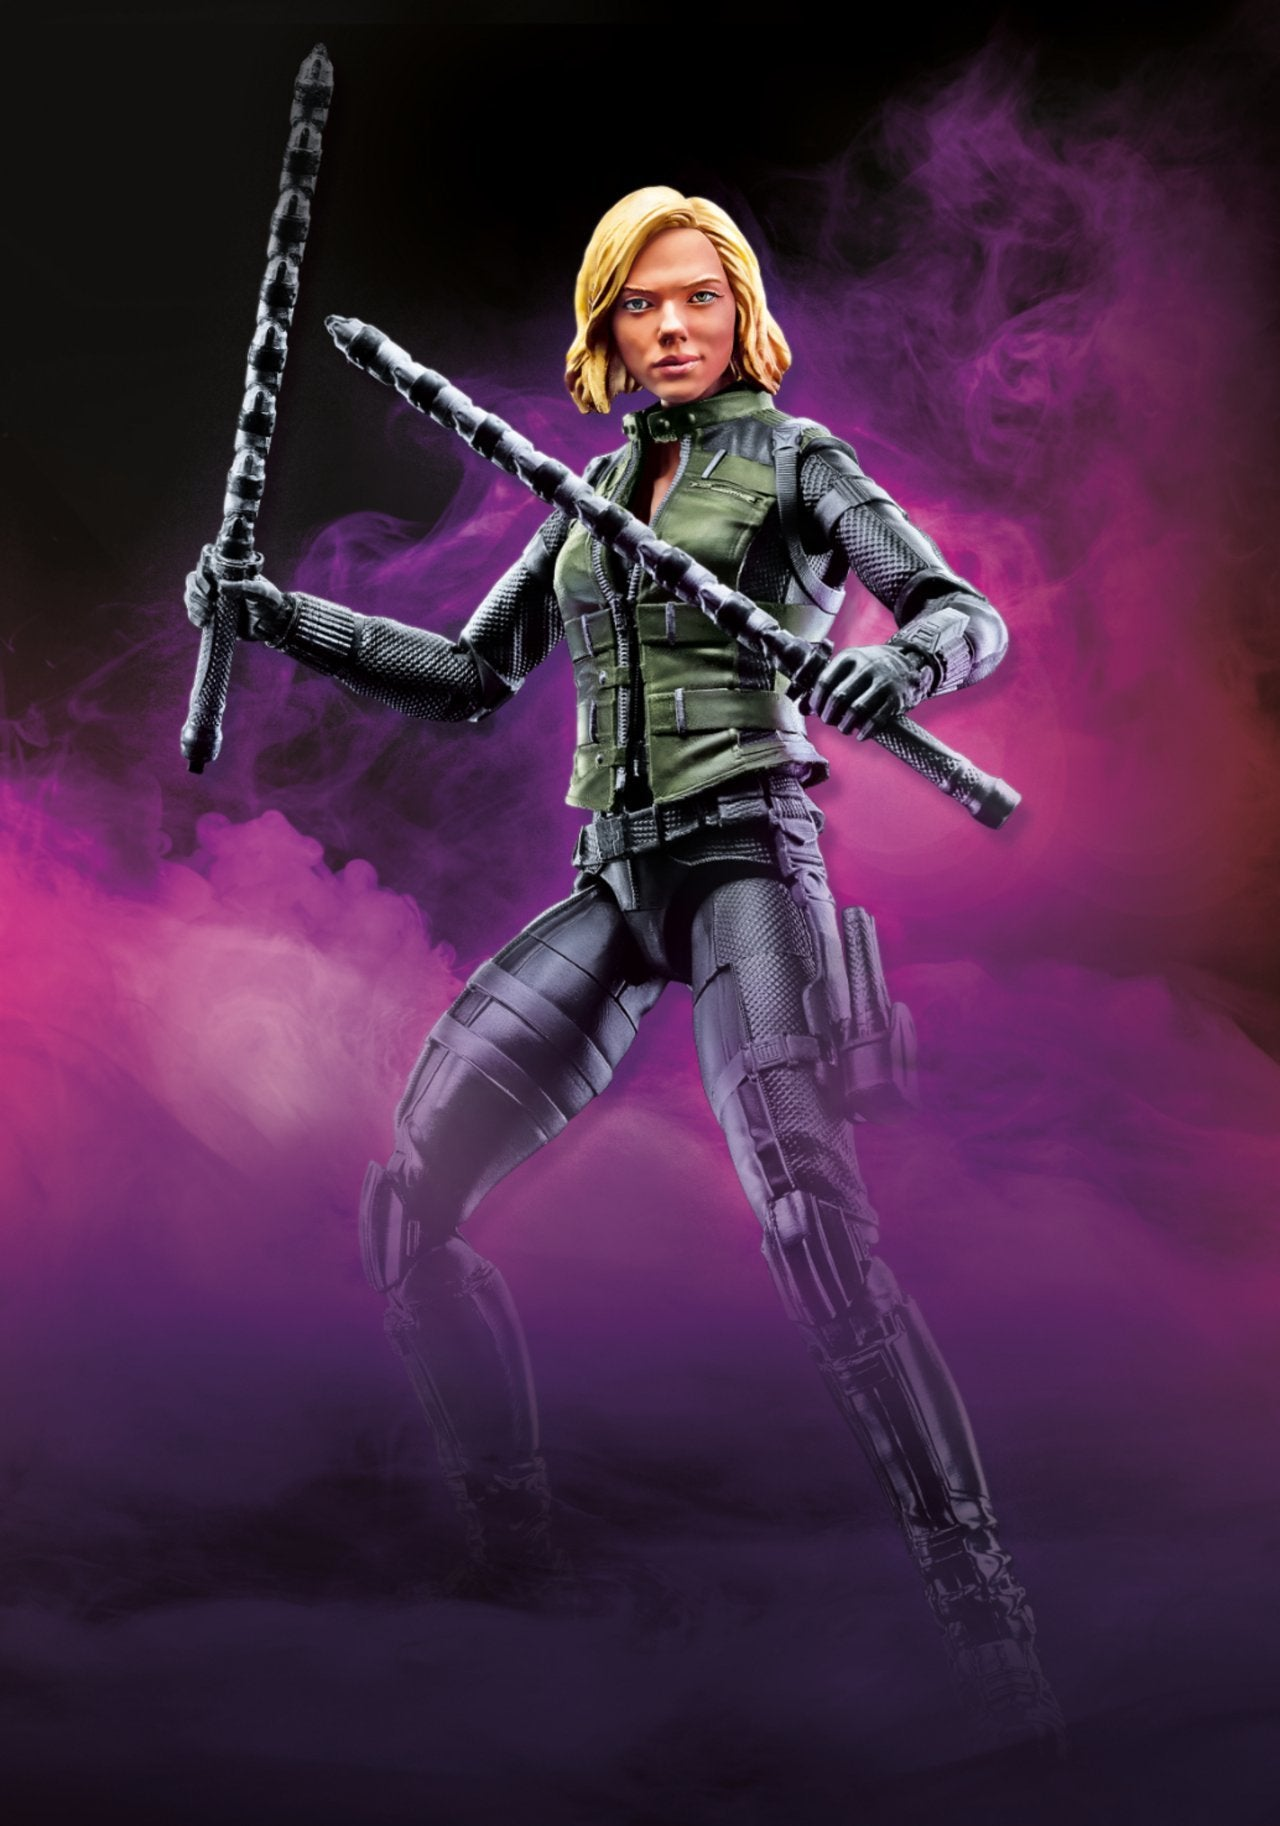 Avengers Infinity War Hasbro Figures - Black Widow